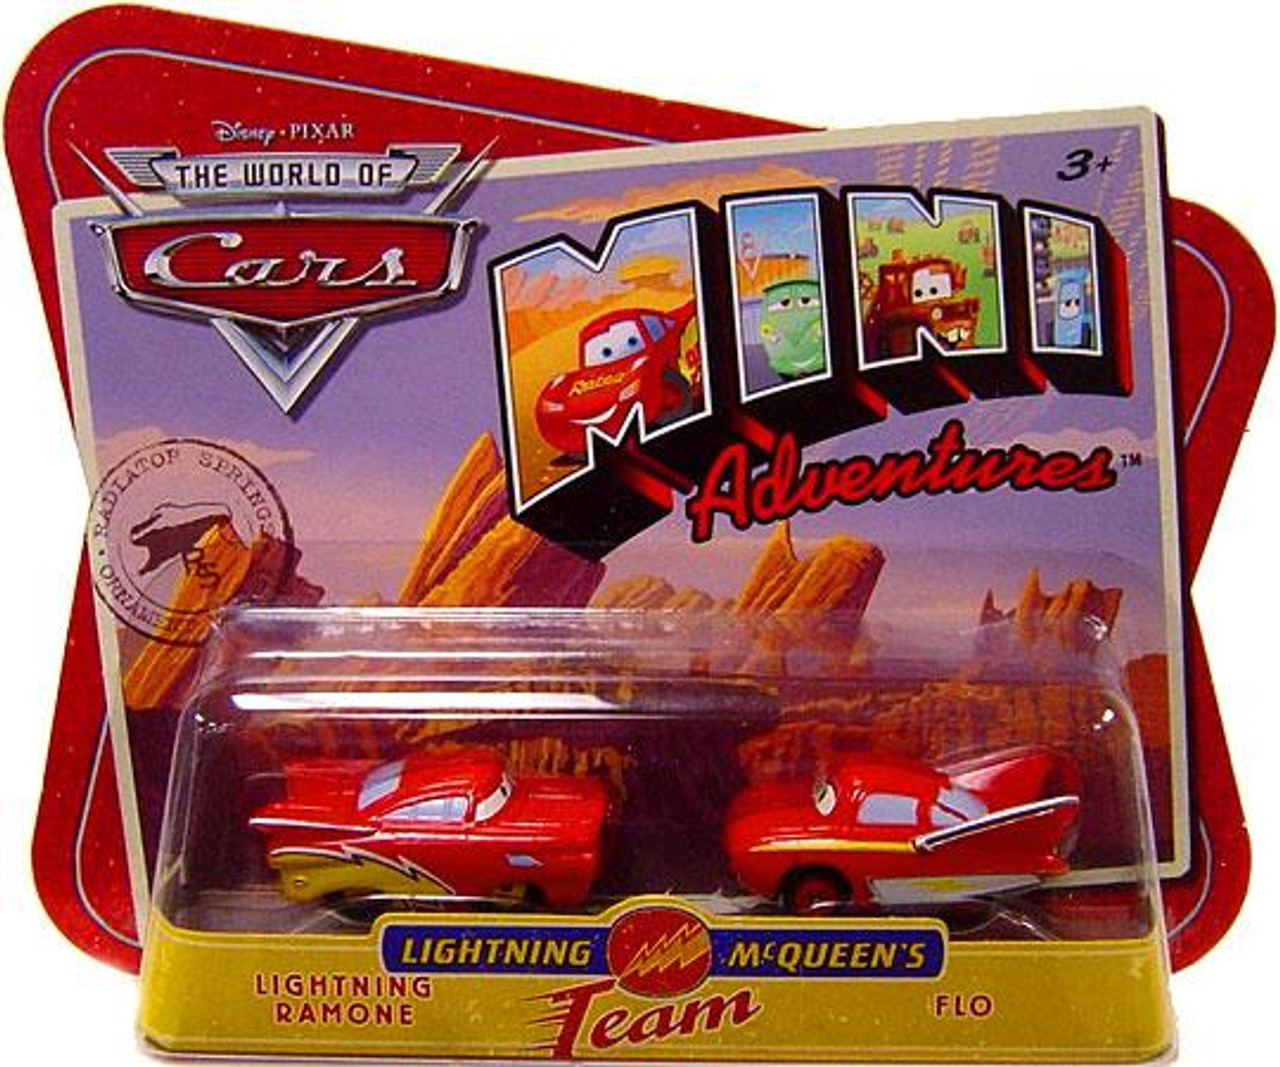 Disney Cars The World of Cars Mini Adventures Lightning Ramone & Flo Plastic Car 2-Pack [Lightning McQueen's Team]